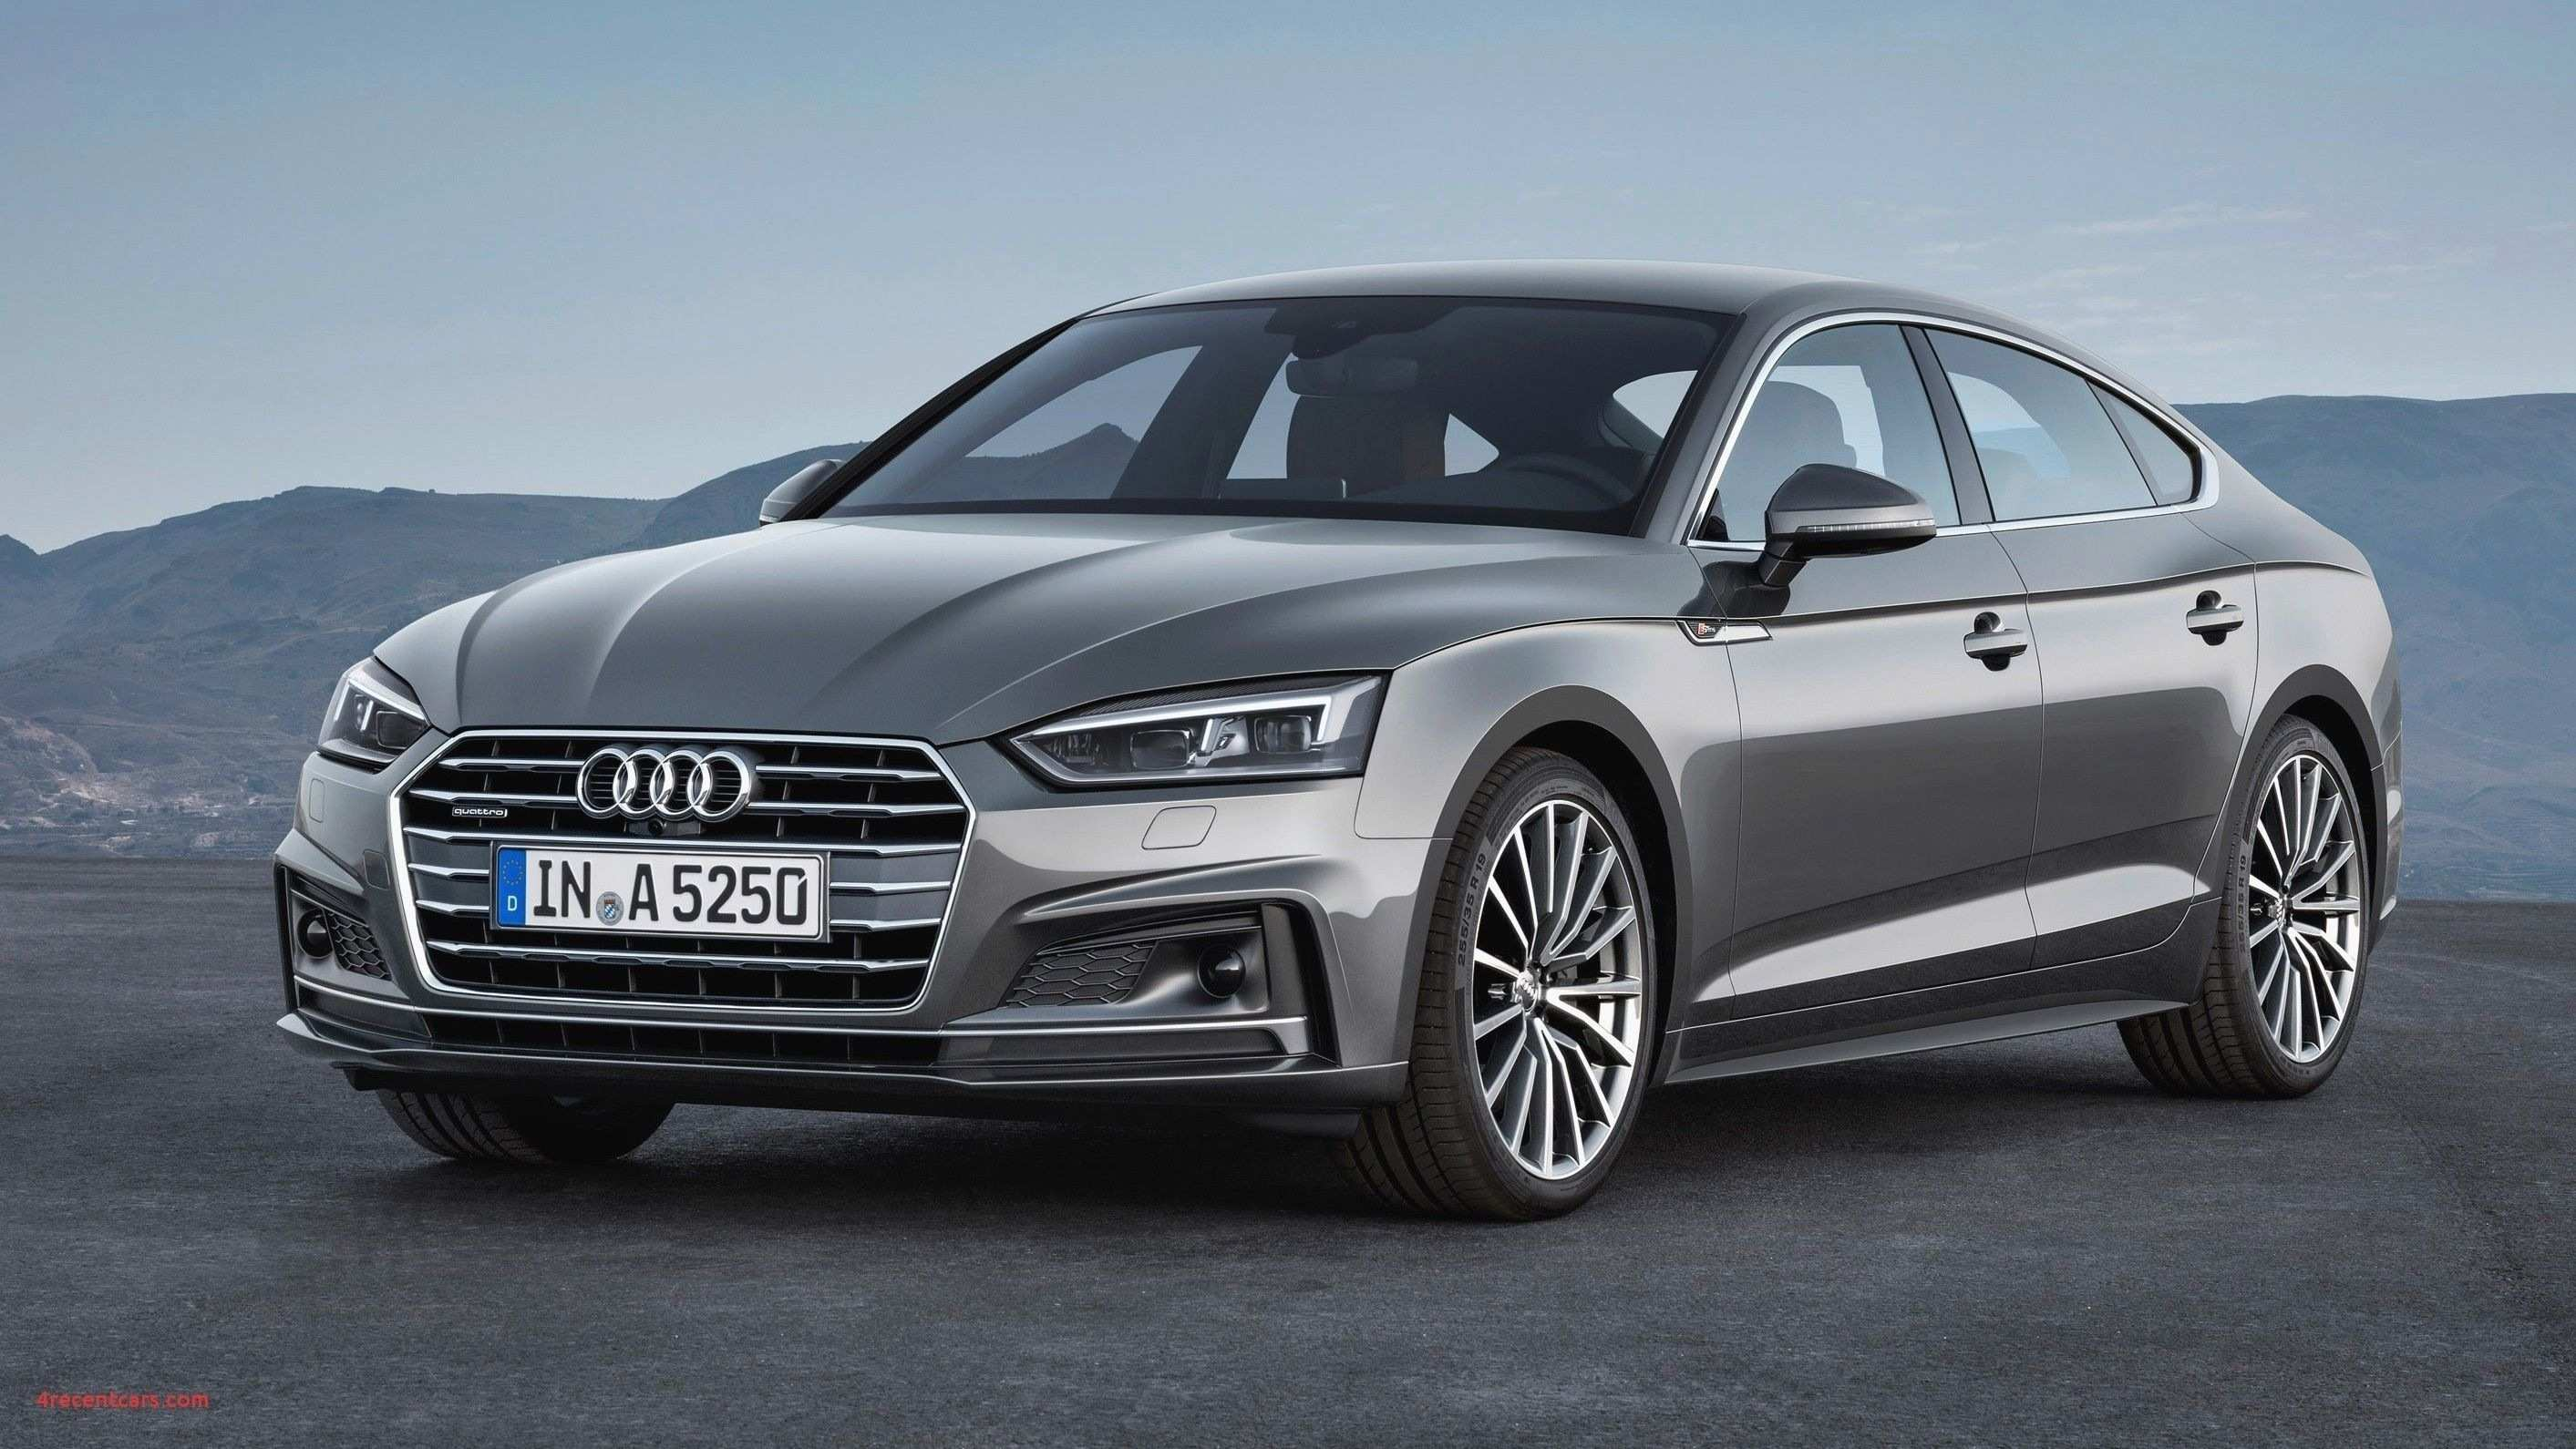 33 All New 2020 Audi Q8Quotes Picture